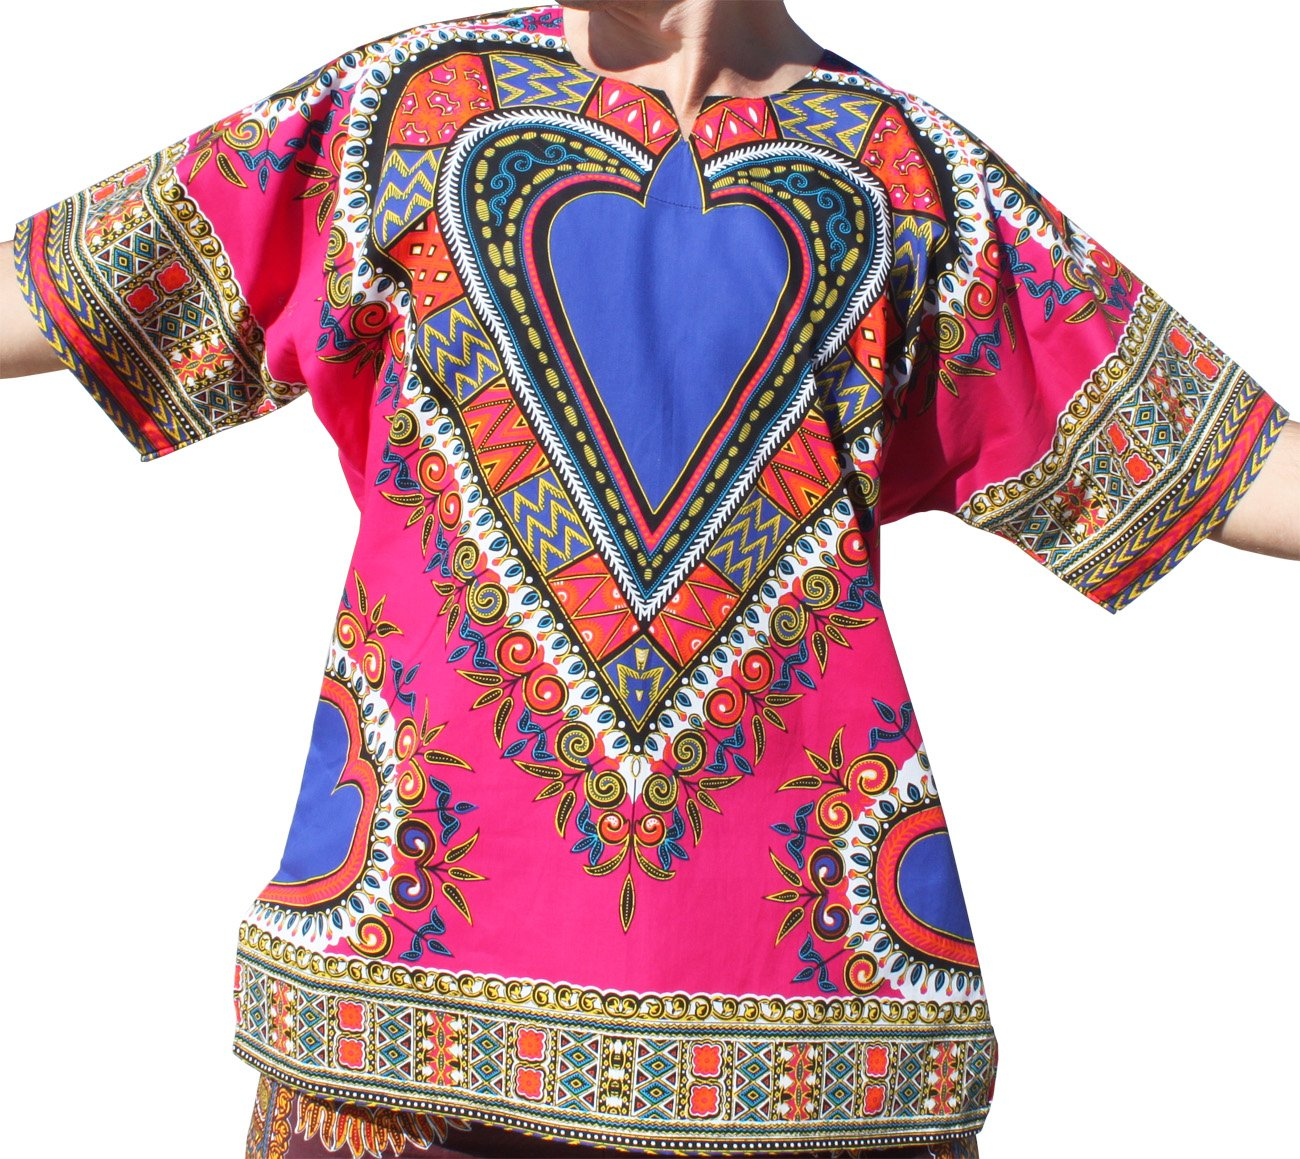 RaanPahMuang Bright Heart Cotton Africa Dashiki Plus Sized Shirt Plain Front, XXXXX-Large, Pink by RaanPahMuang